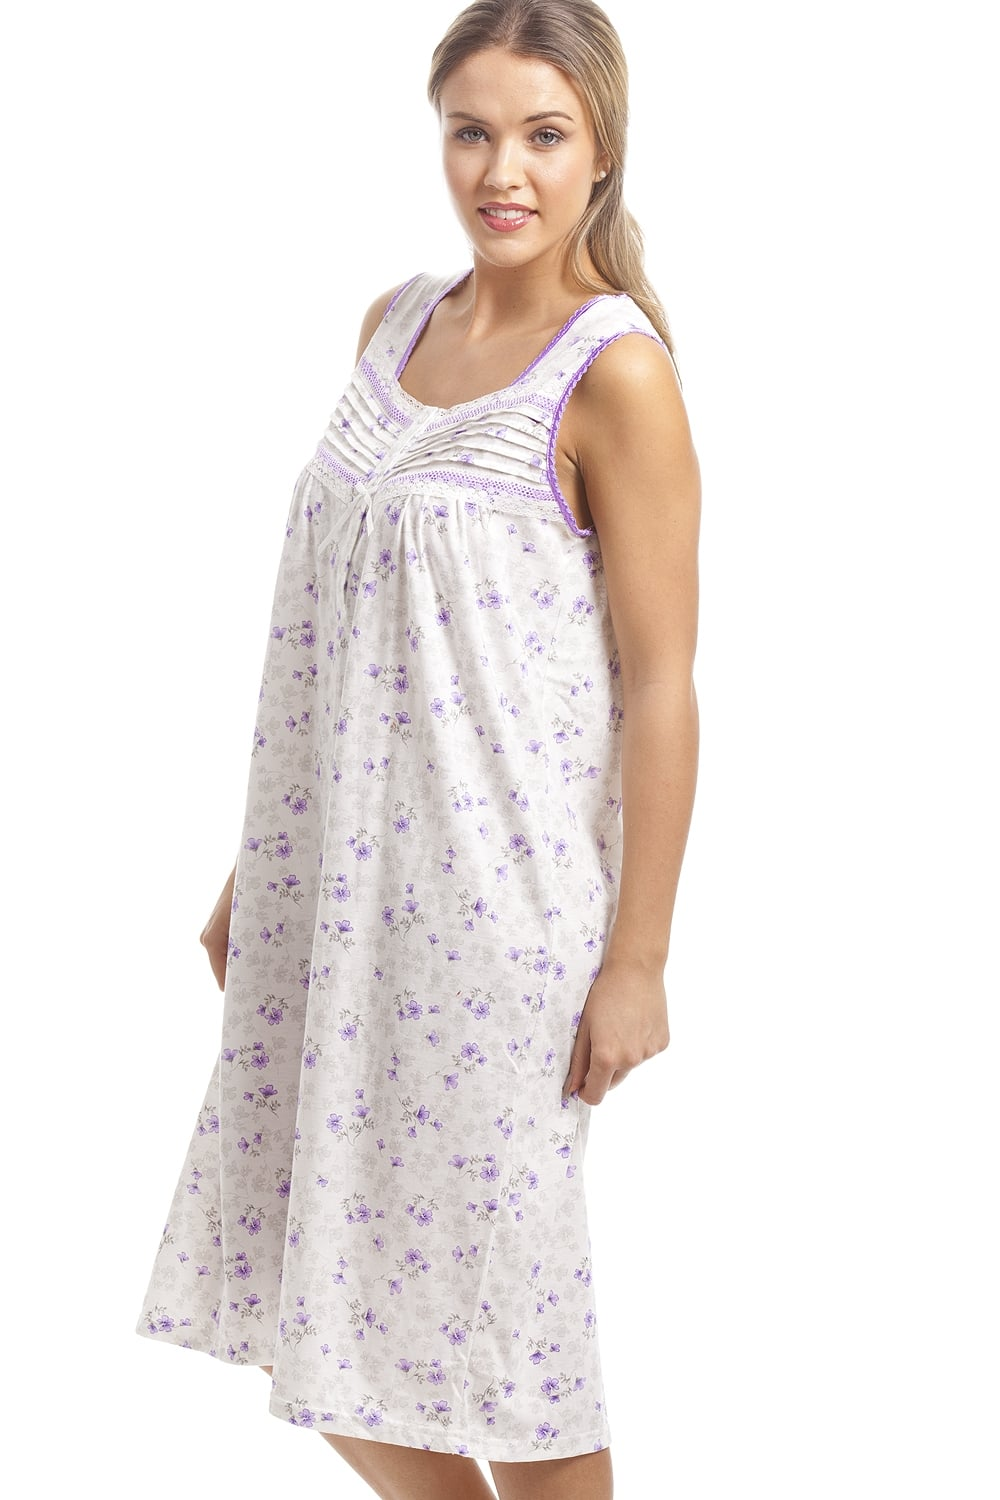 Camille Classic Lilac Floral Print White Sleeveless Nightdress a53c334e7